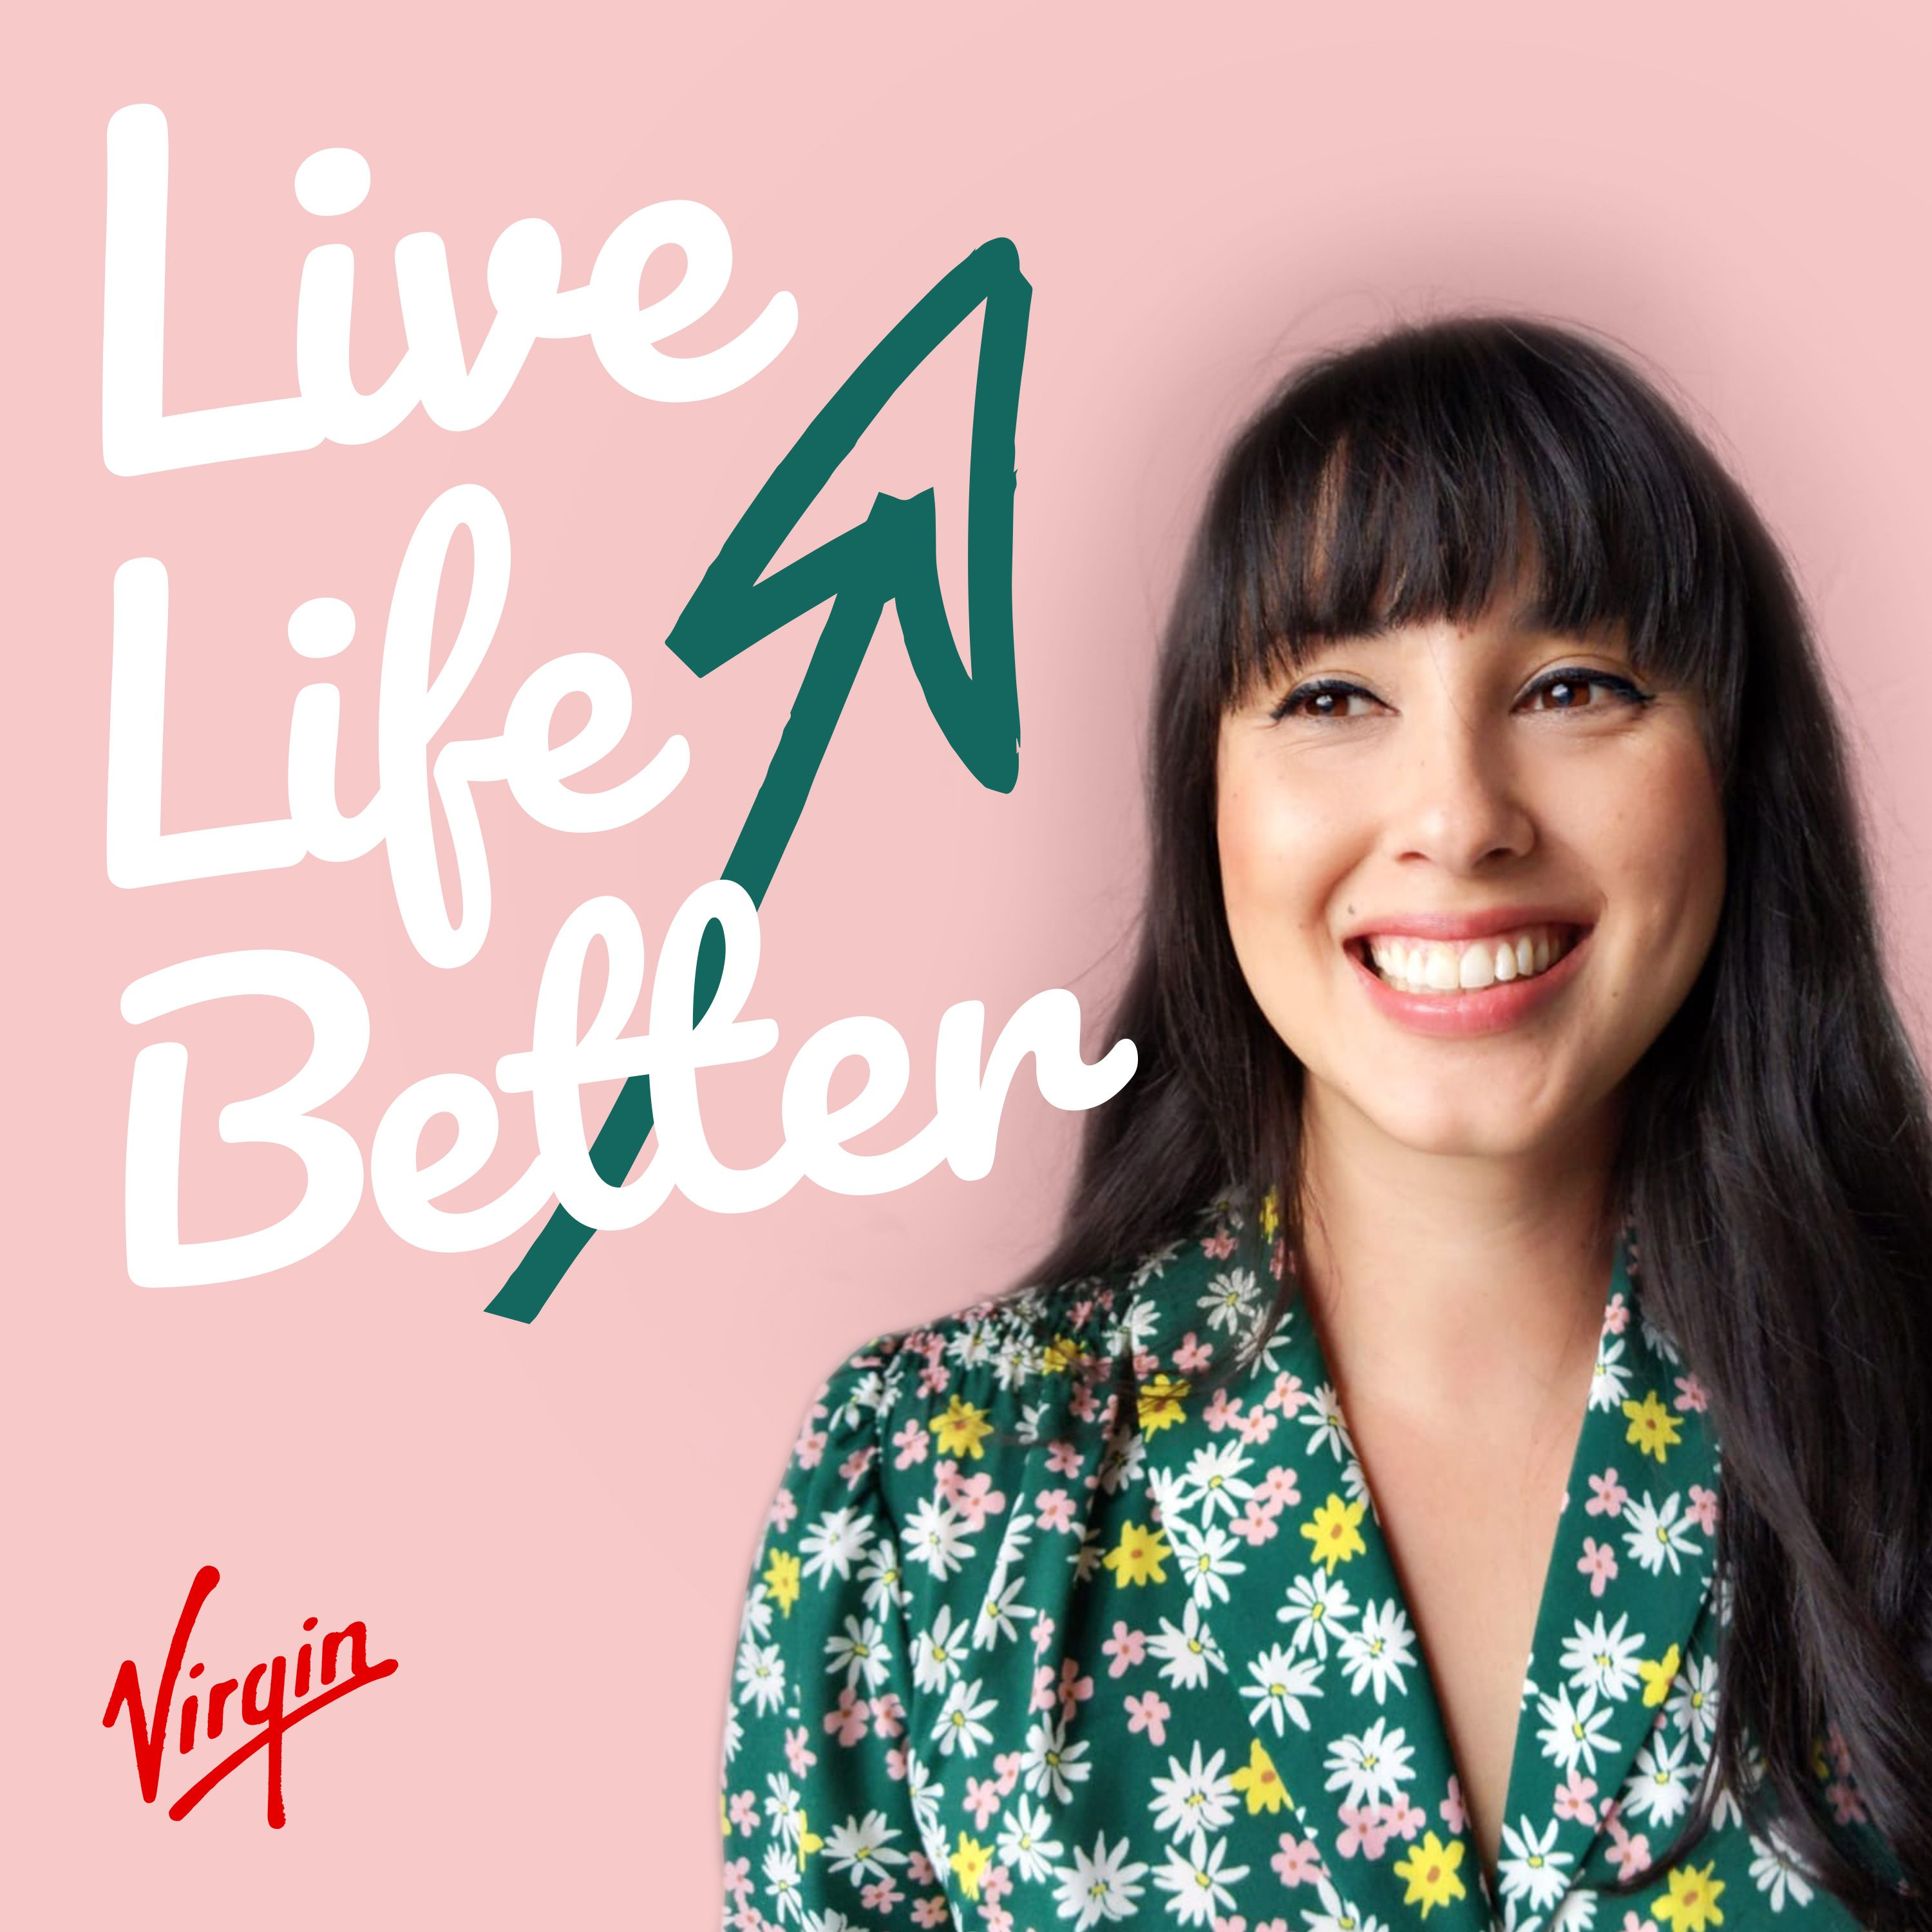 The Live Life Better approach to immersing your senses